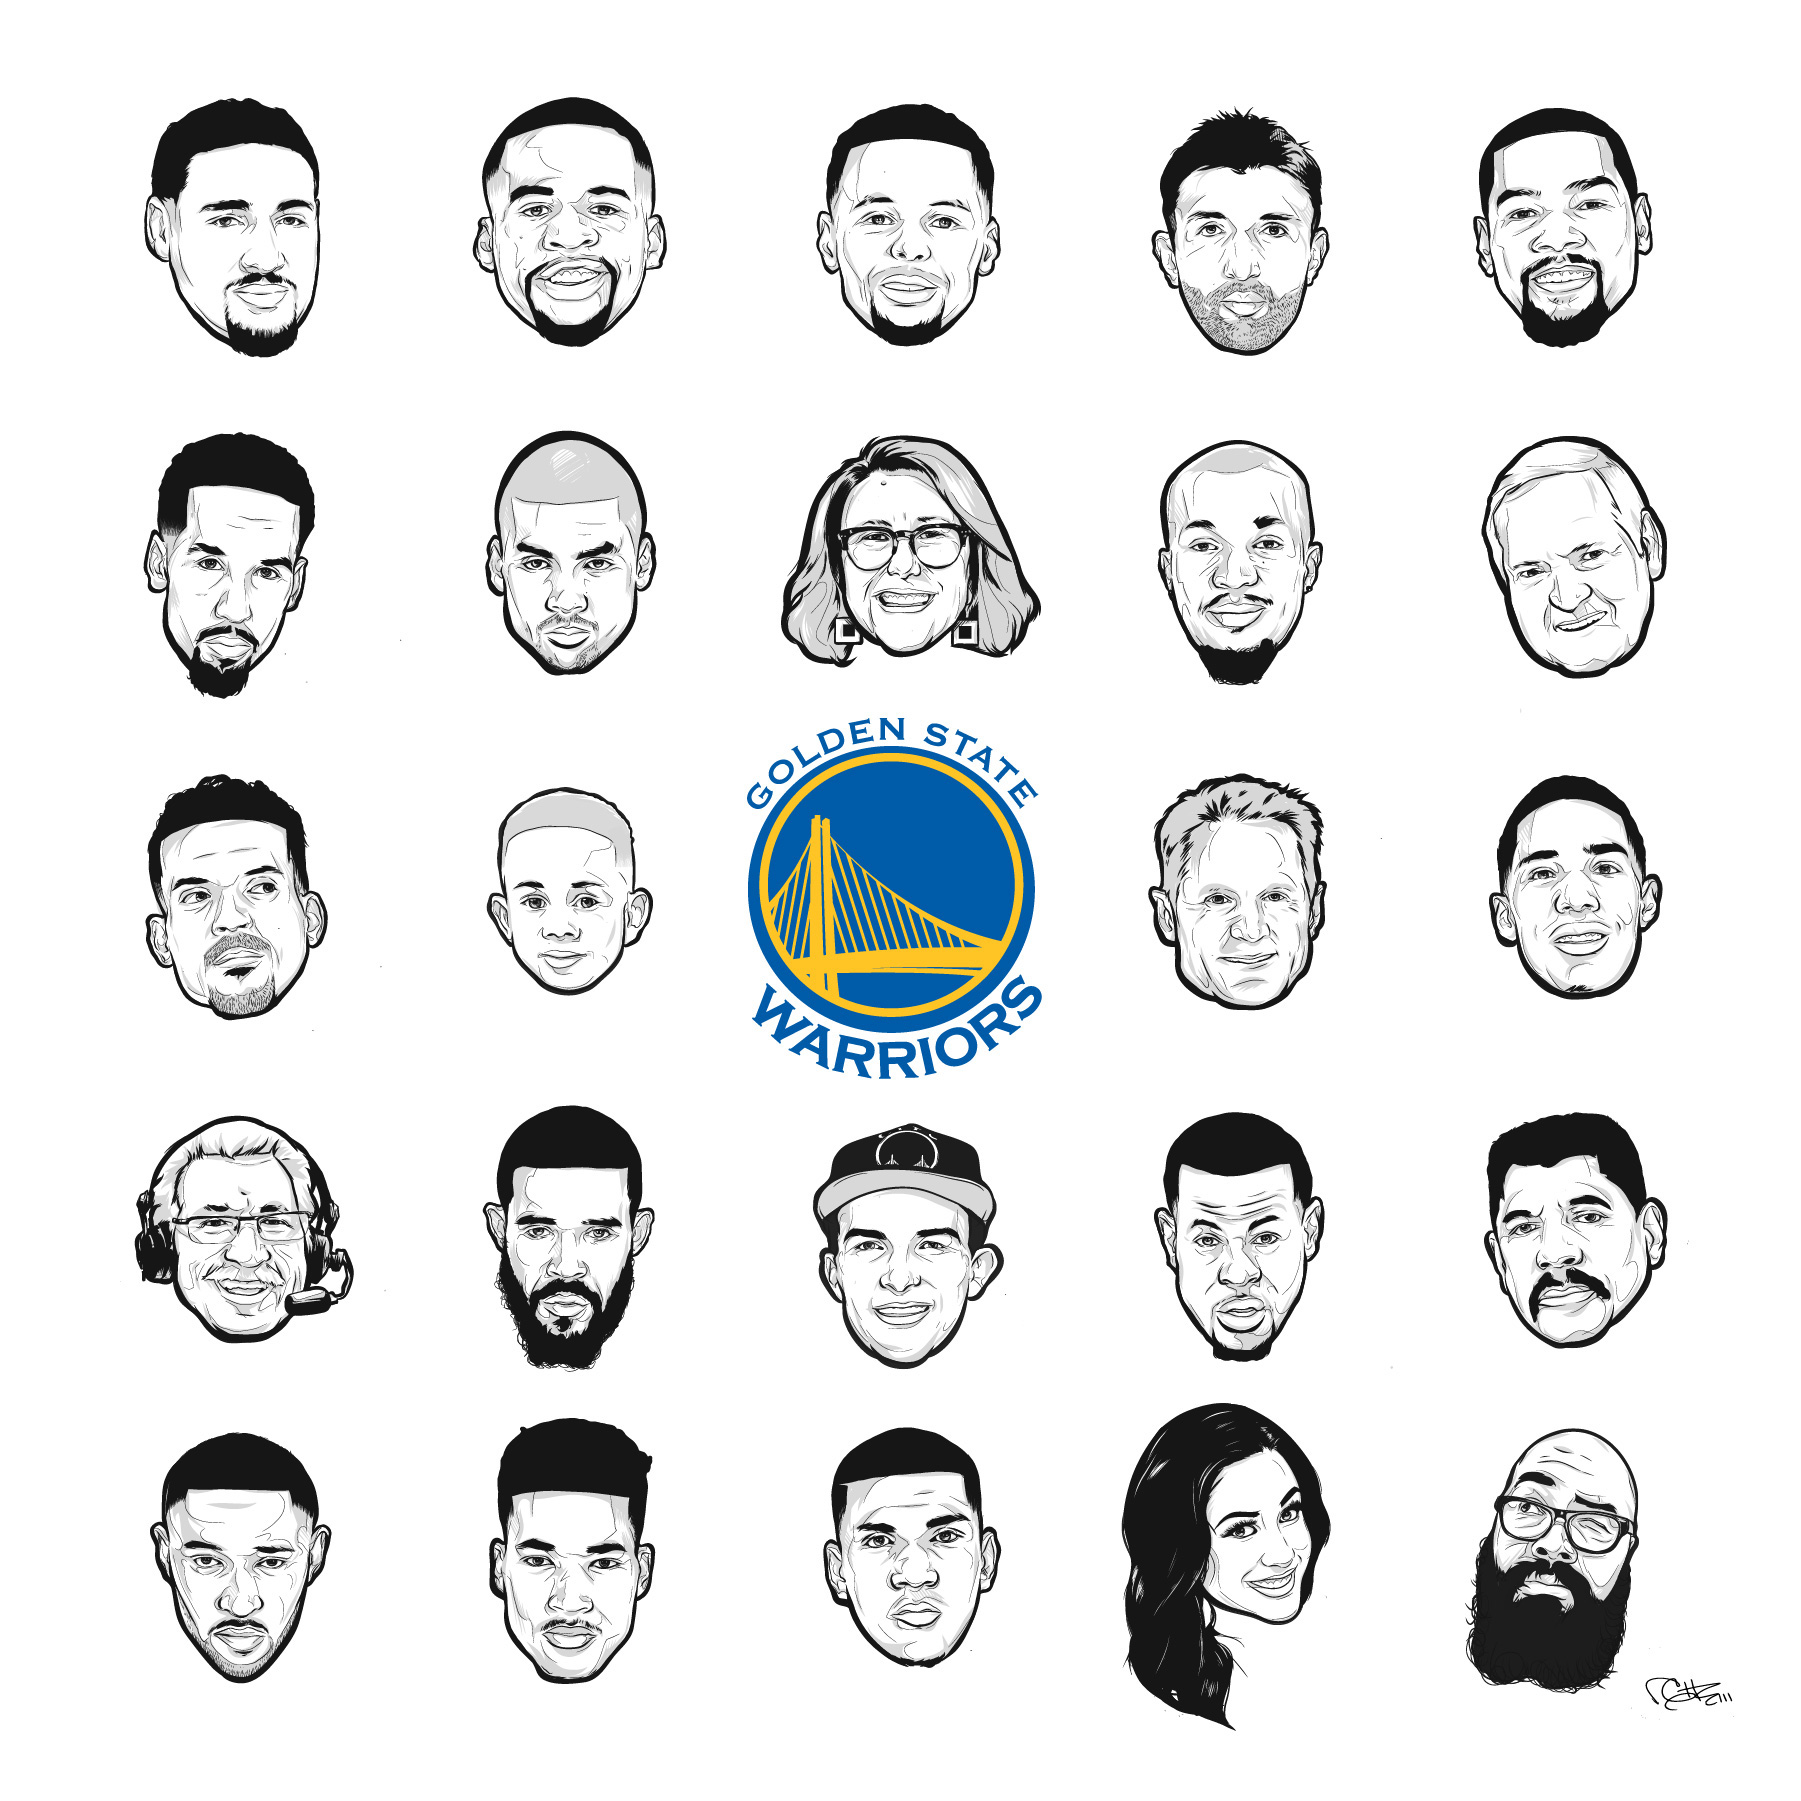 2017 Golden State Warrior Fan Night T-shirt on Behance 86cf8505f